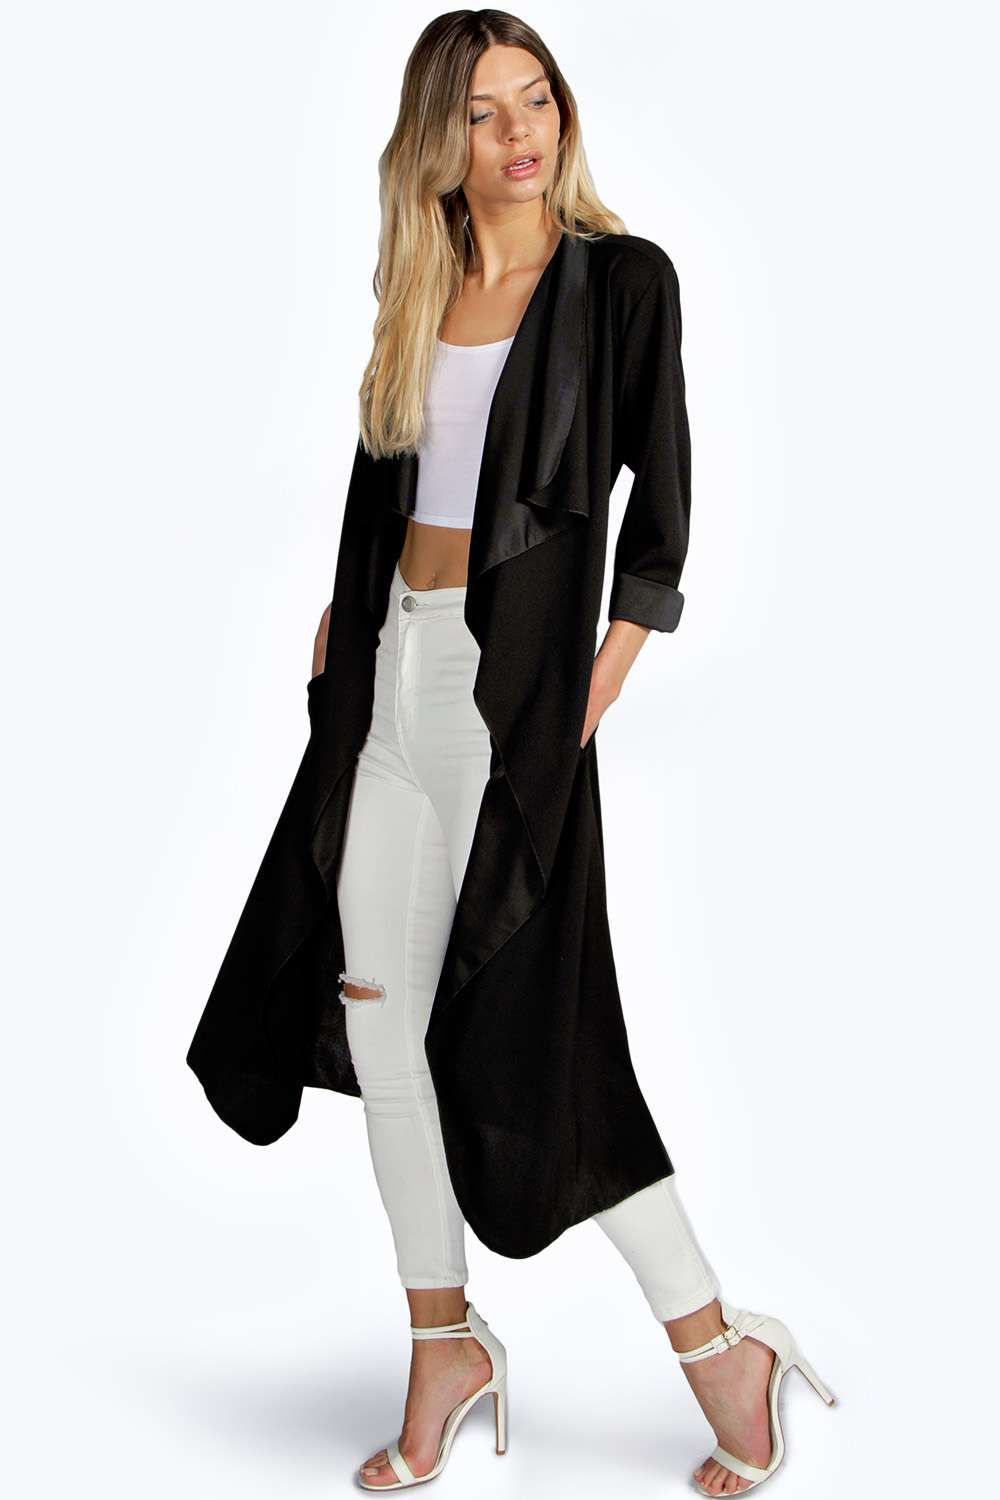 Dusters | Shop Duster Coats and Duster Jackets